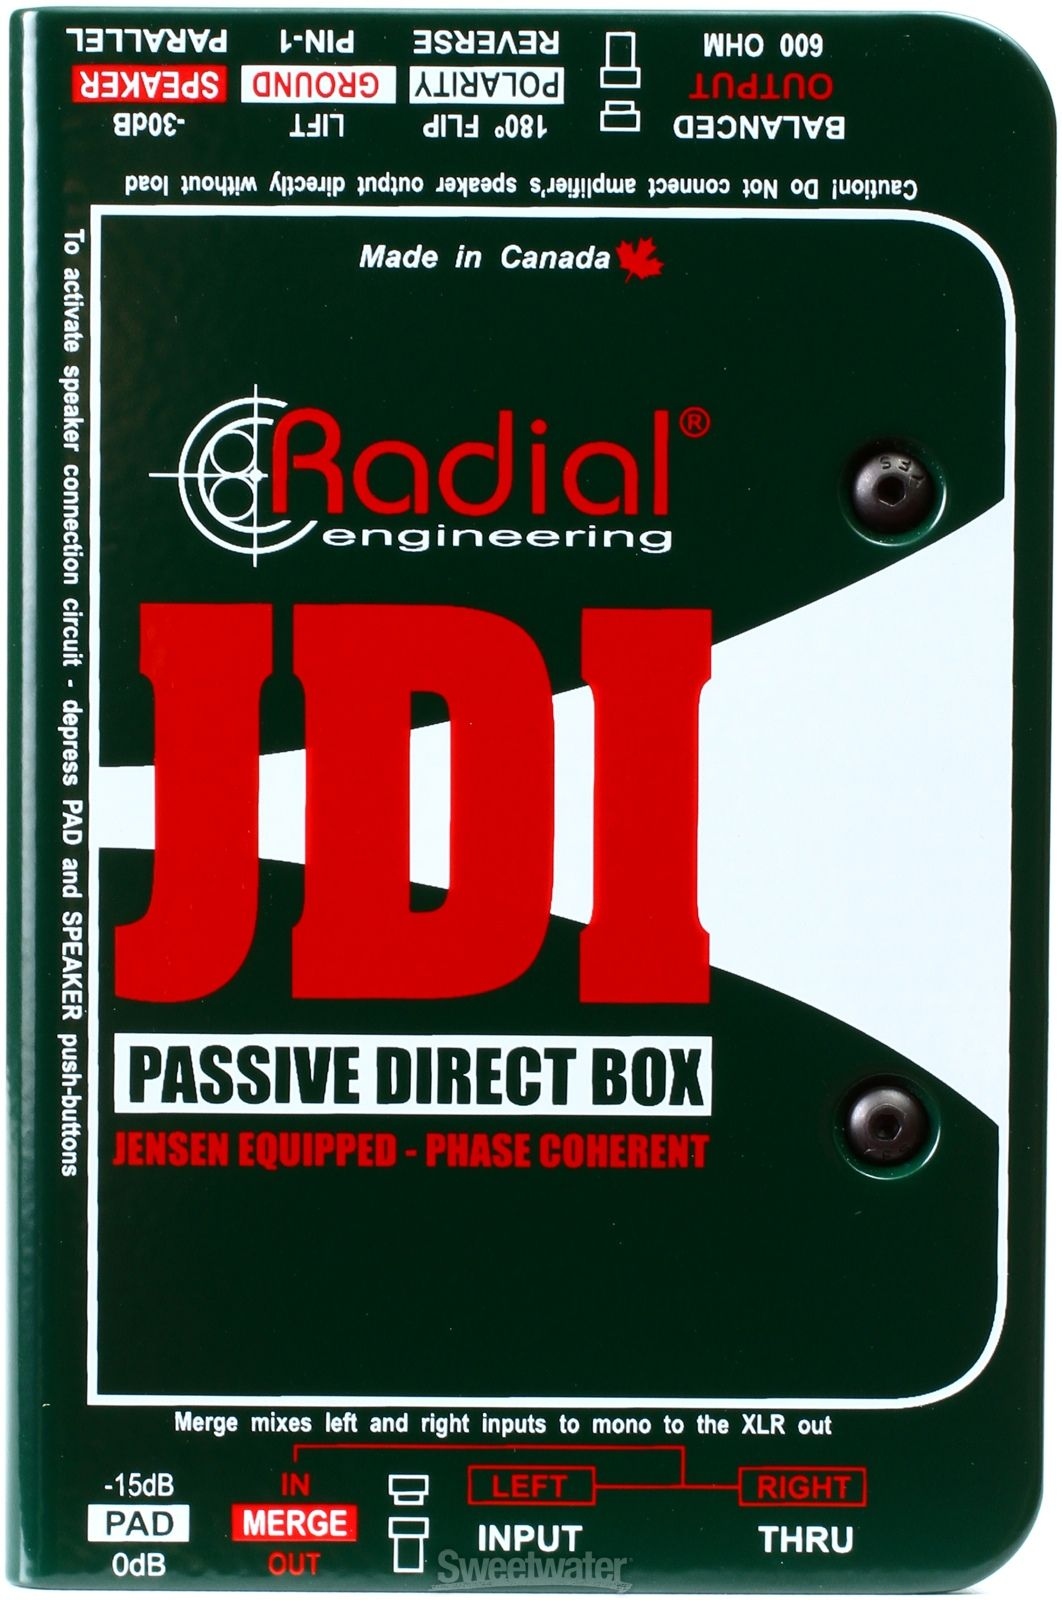 Radial Jdi Jensen Equipped 1 Channel Passive Instrument Direct Box I Beam Circuit Transformers